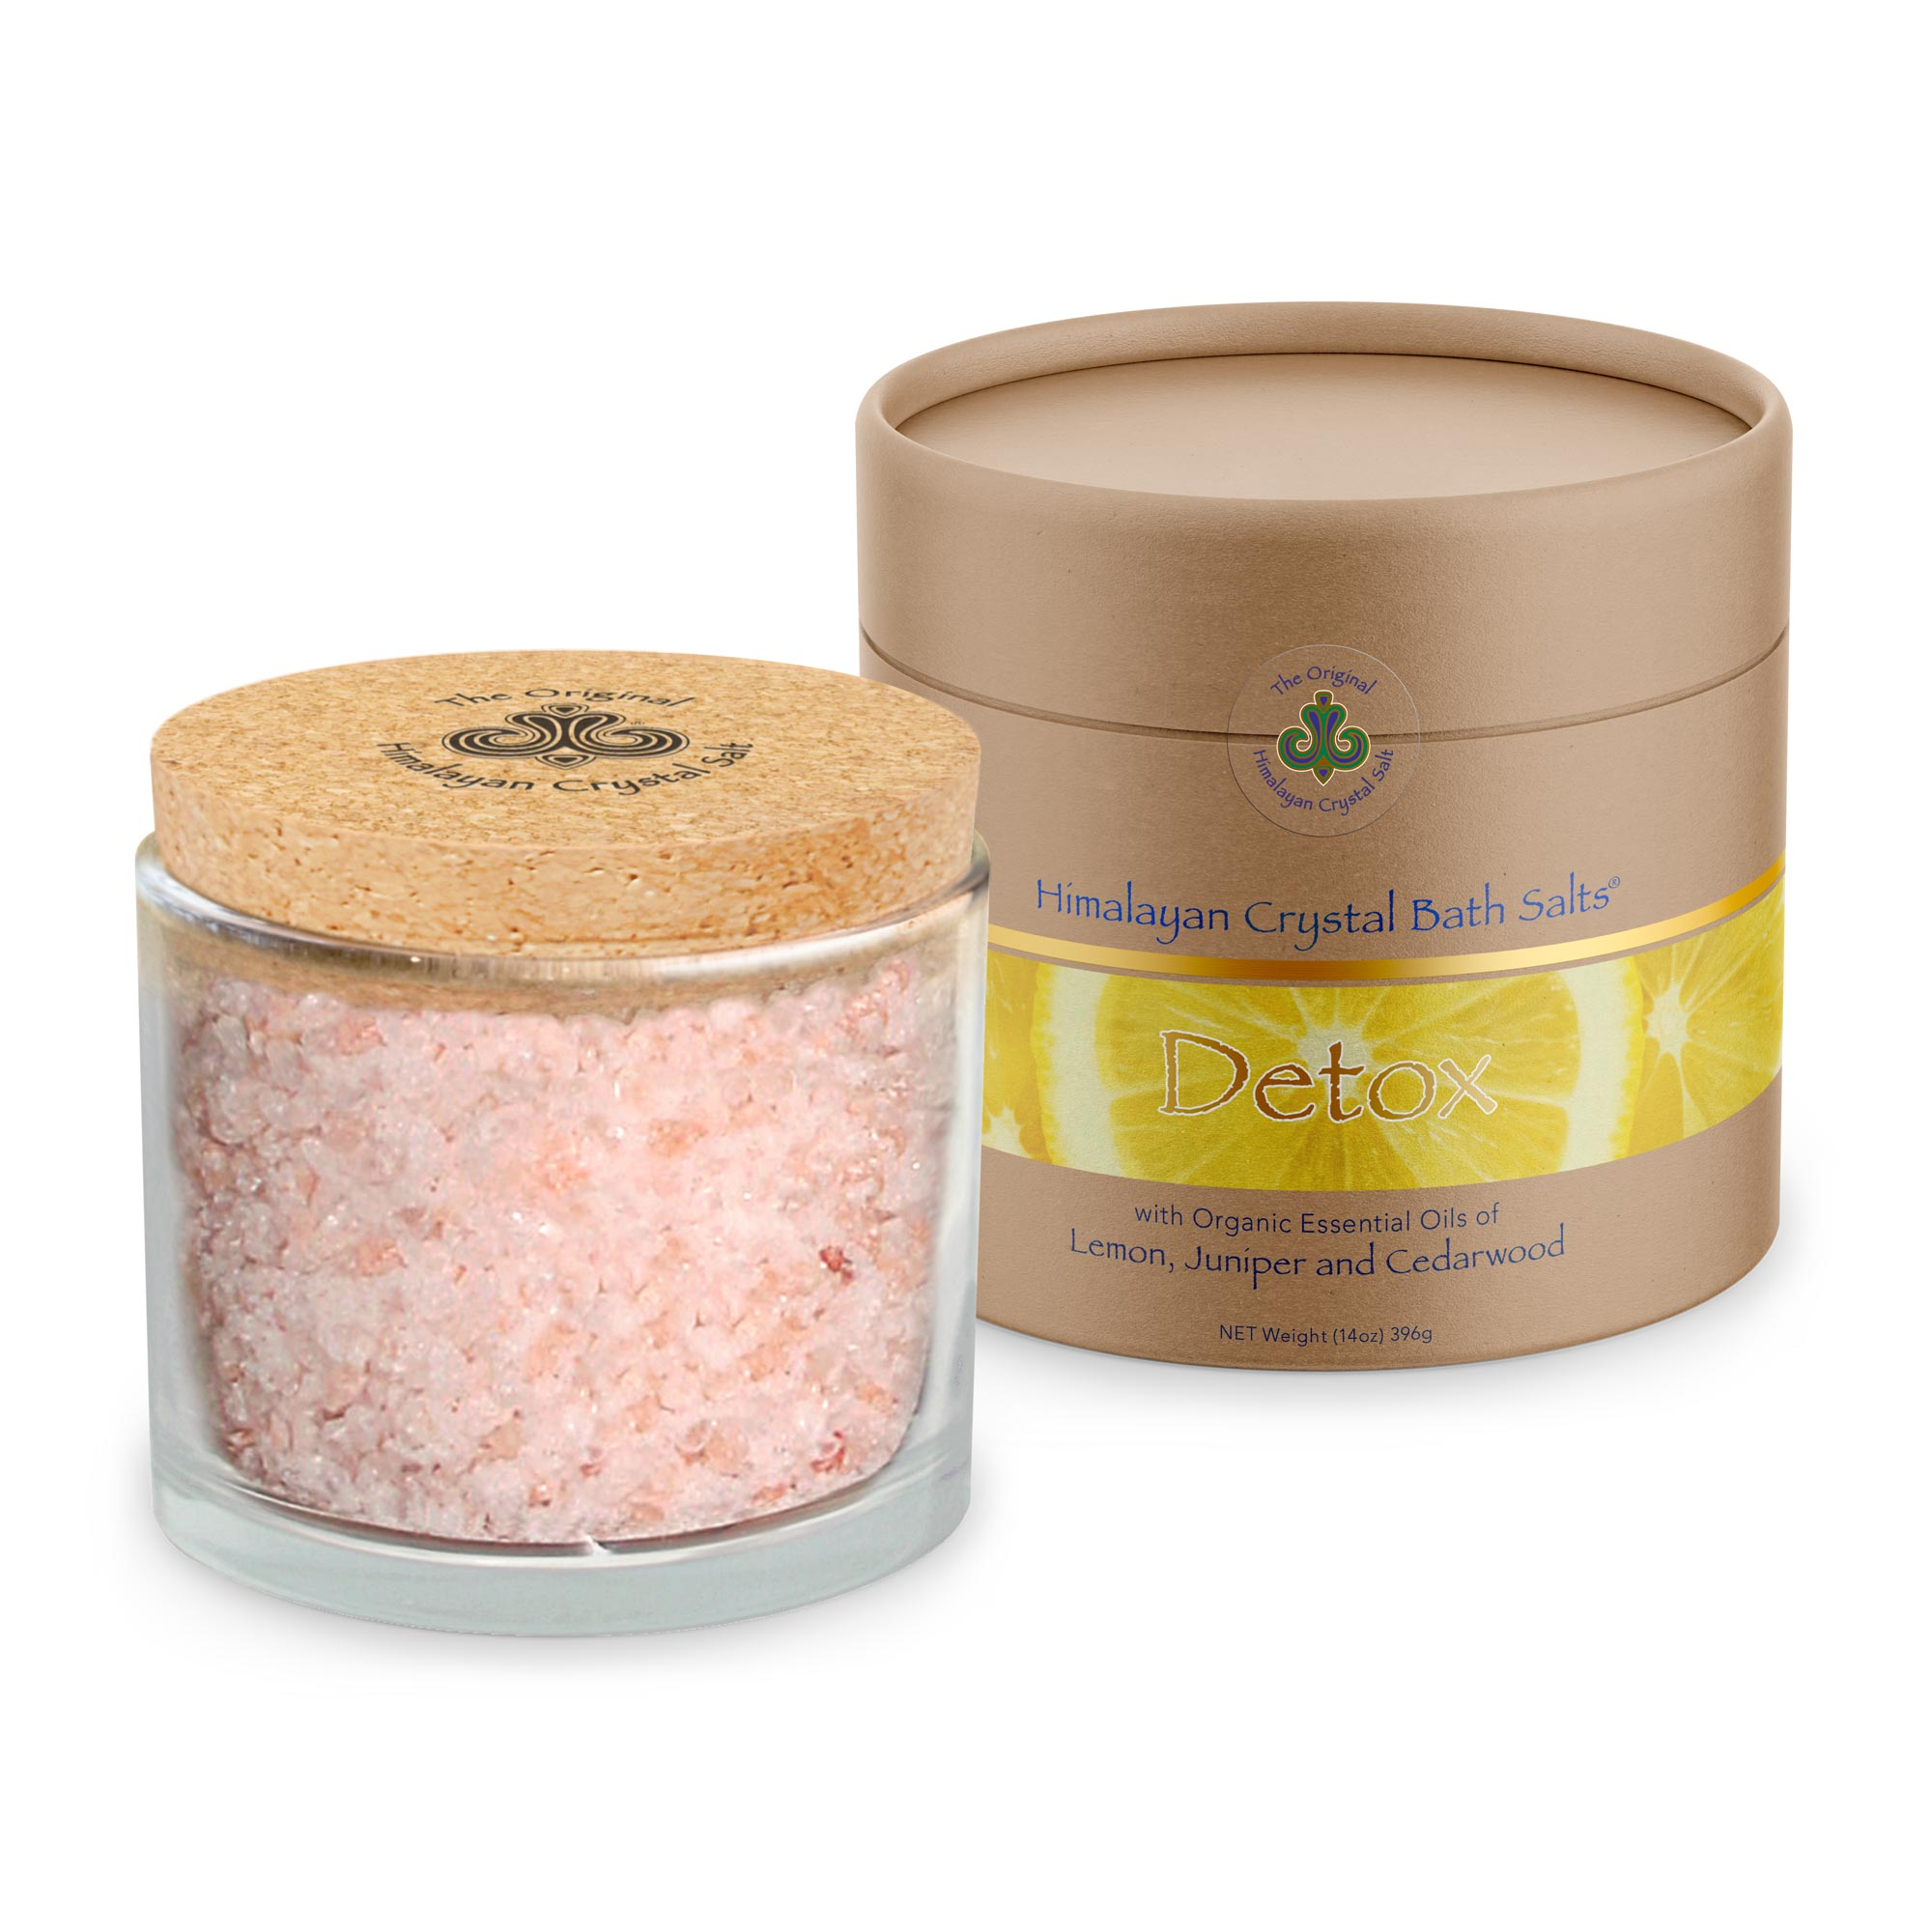 Let go of tension and detoxify in a cleansing salt bath with our Detox Bath Salts made with 100% organic essential oils of juniper, cedarwood, and lemon.  A warm soak in this blend of essential oils chosen to support detox and lymphatic drainage and mineral-rich Original Himalayan Crystal Salt will help you release stored stress and feel renewed.